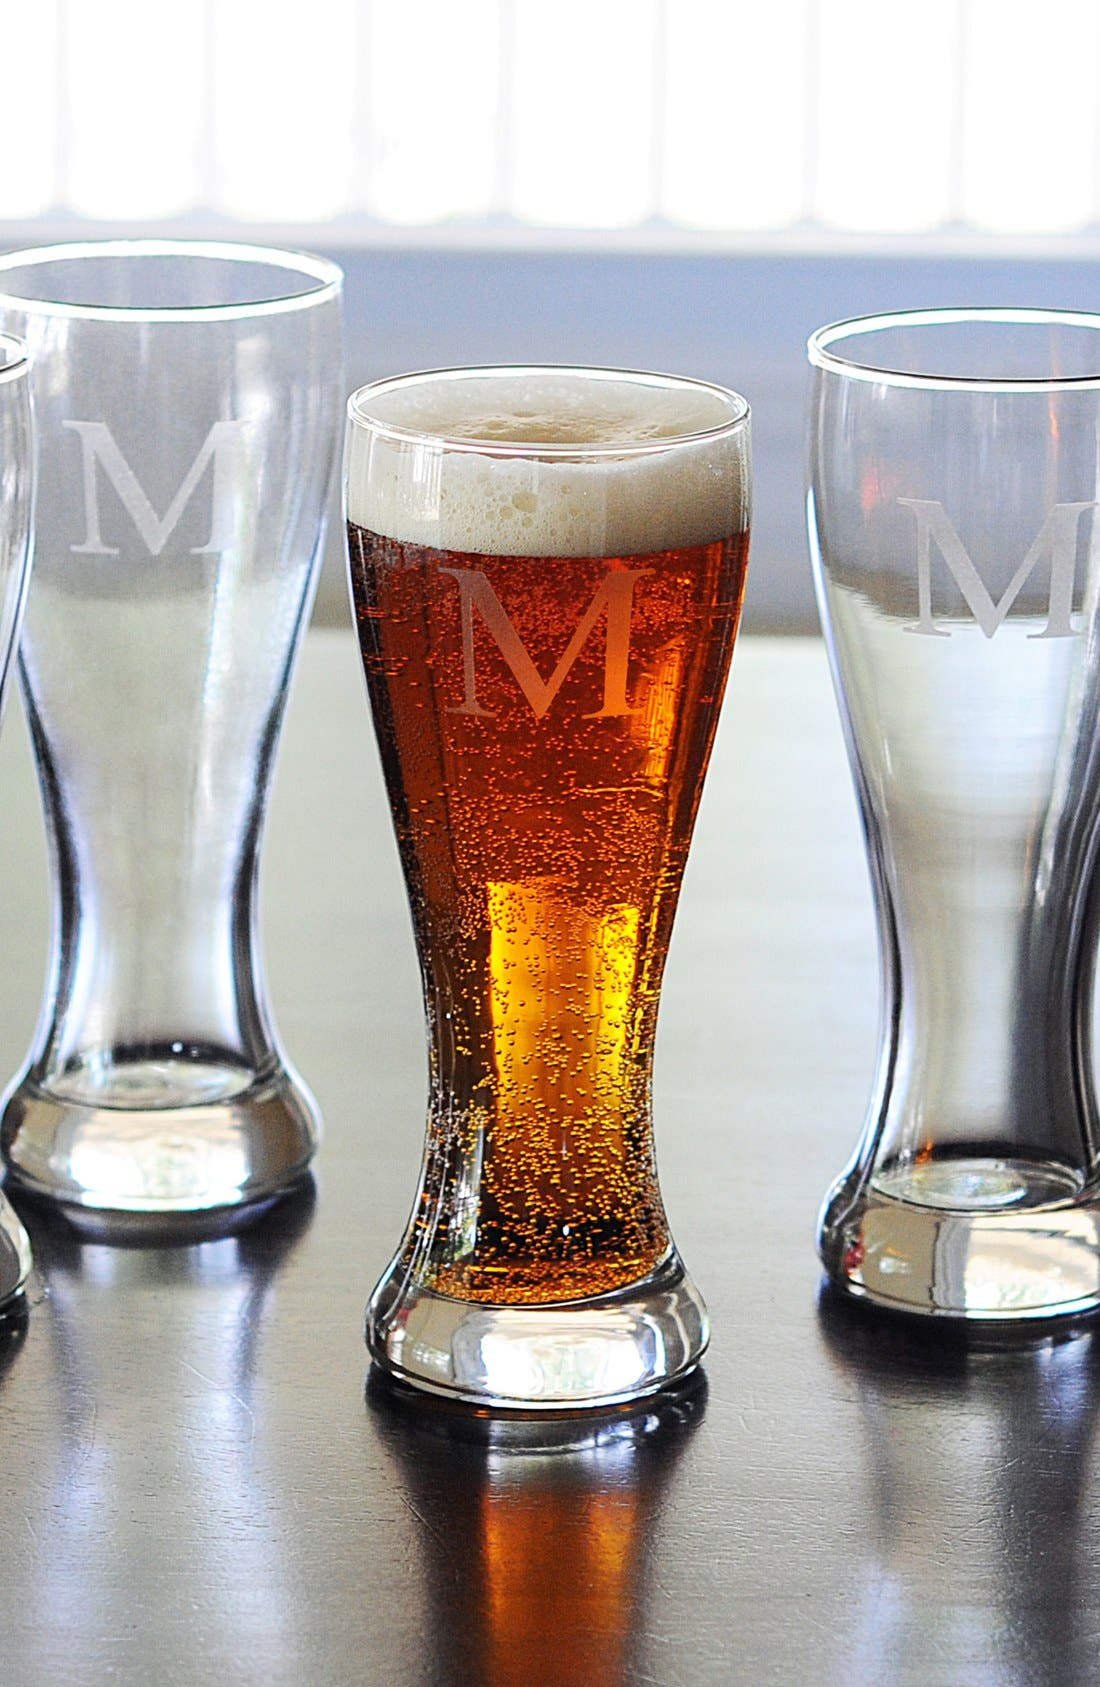 Cathy's Concepts Monogram Pilsner Glasses (Set of 4)